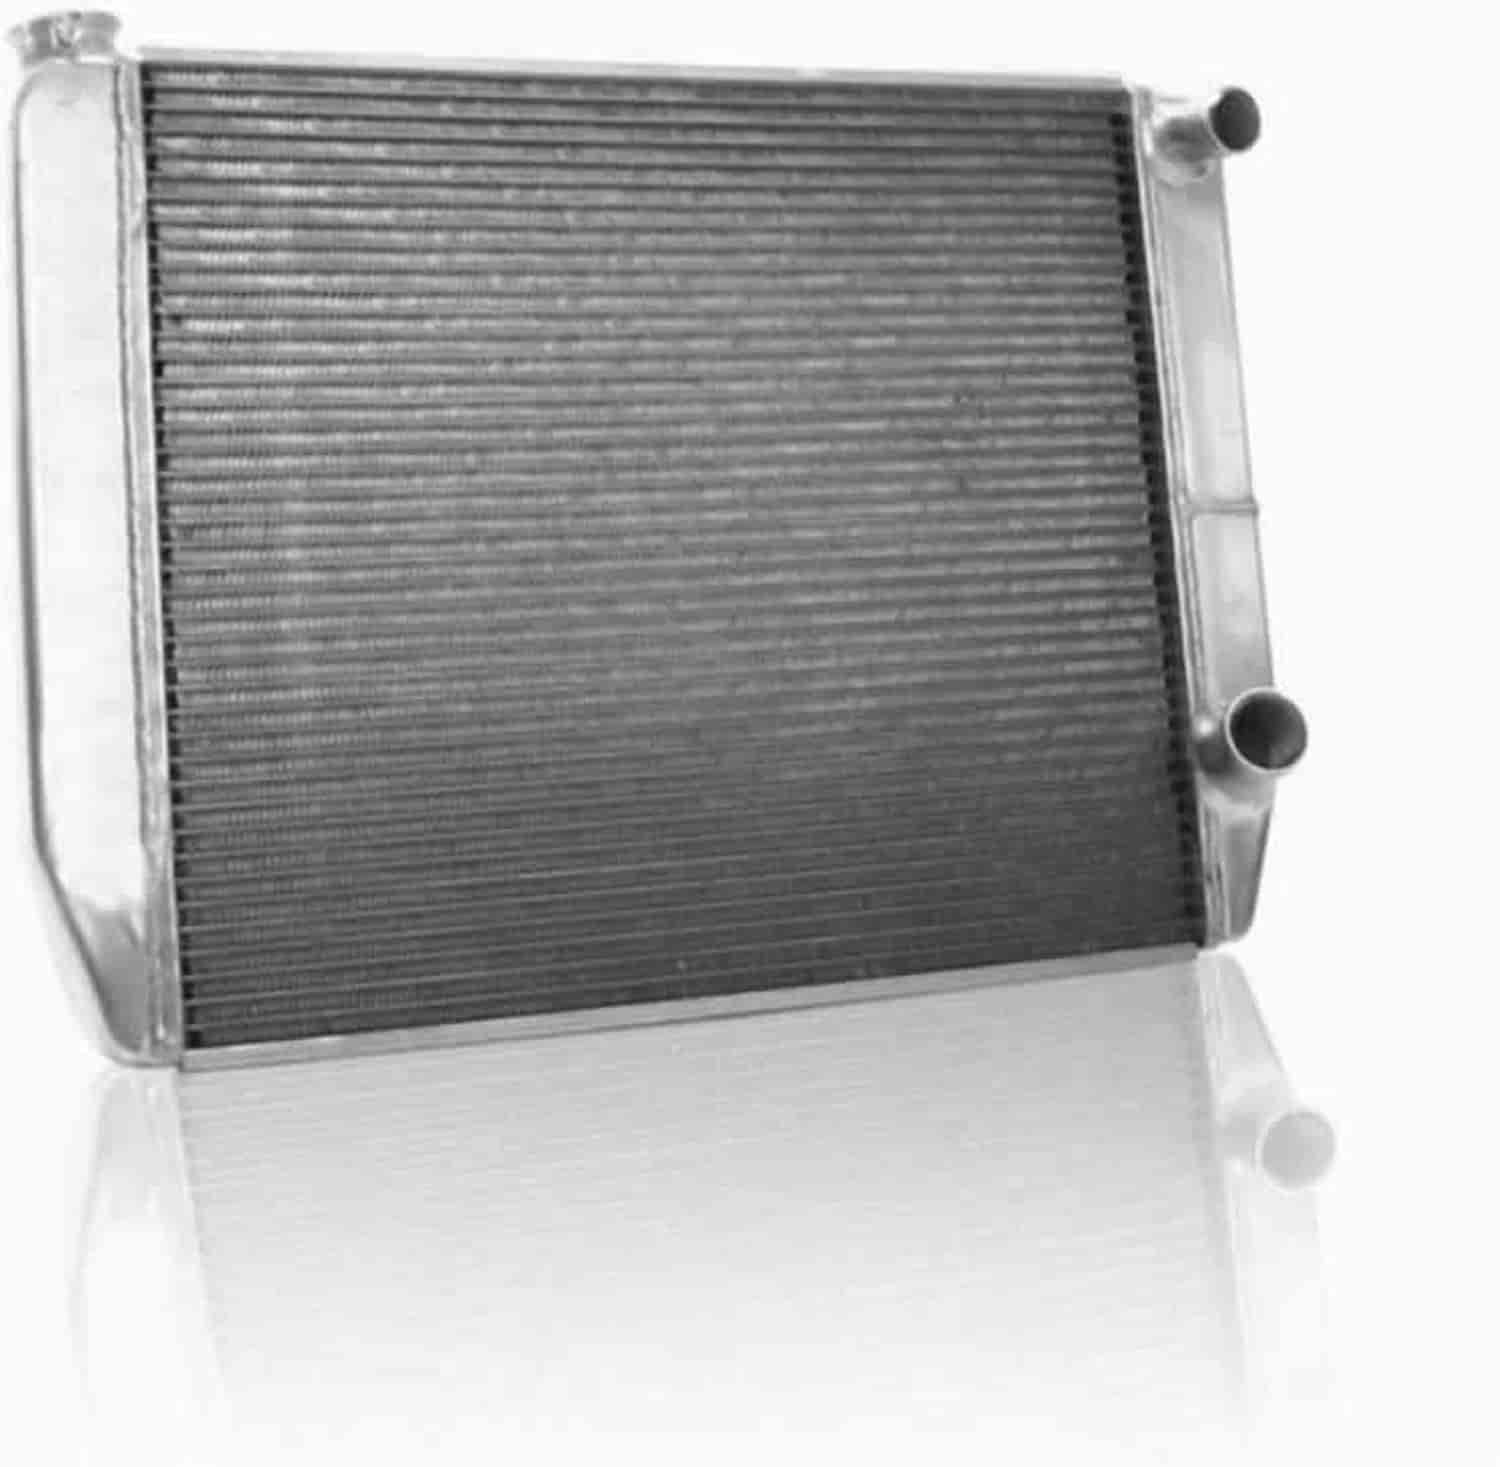 Griffin Radiators 1-58222-X